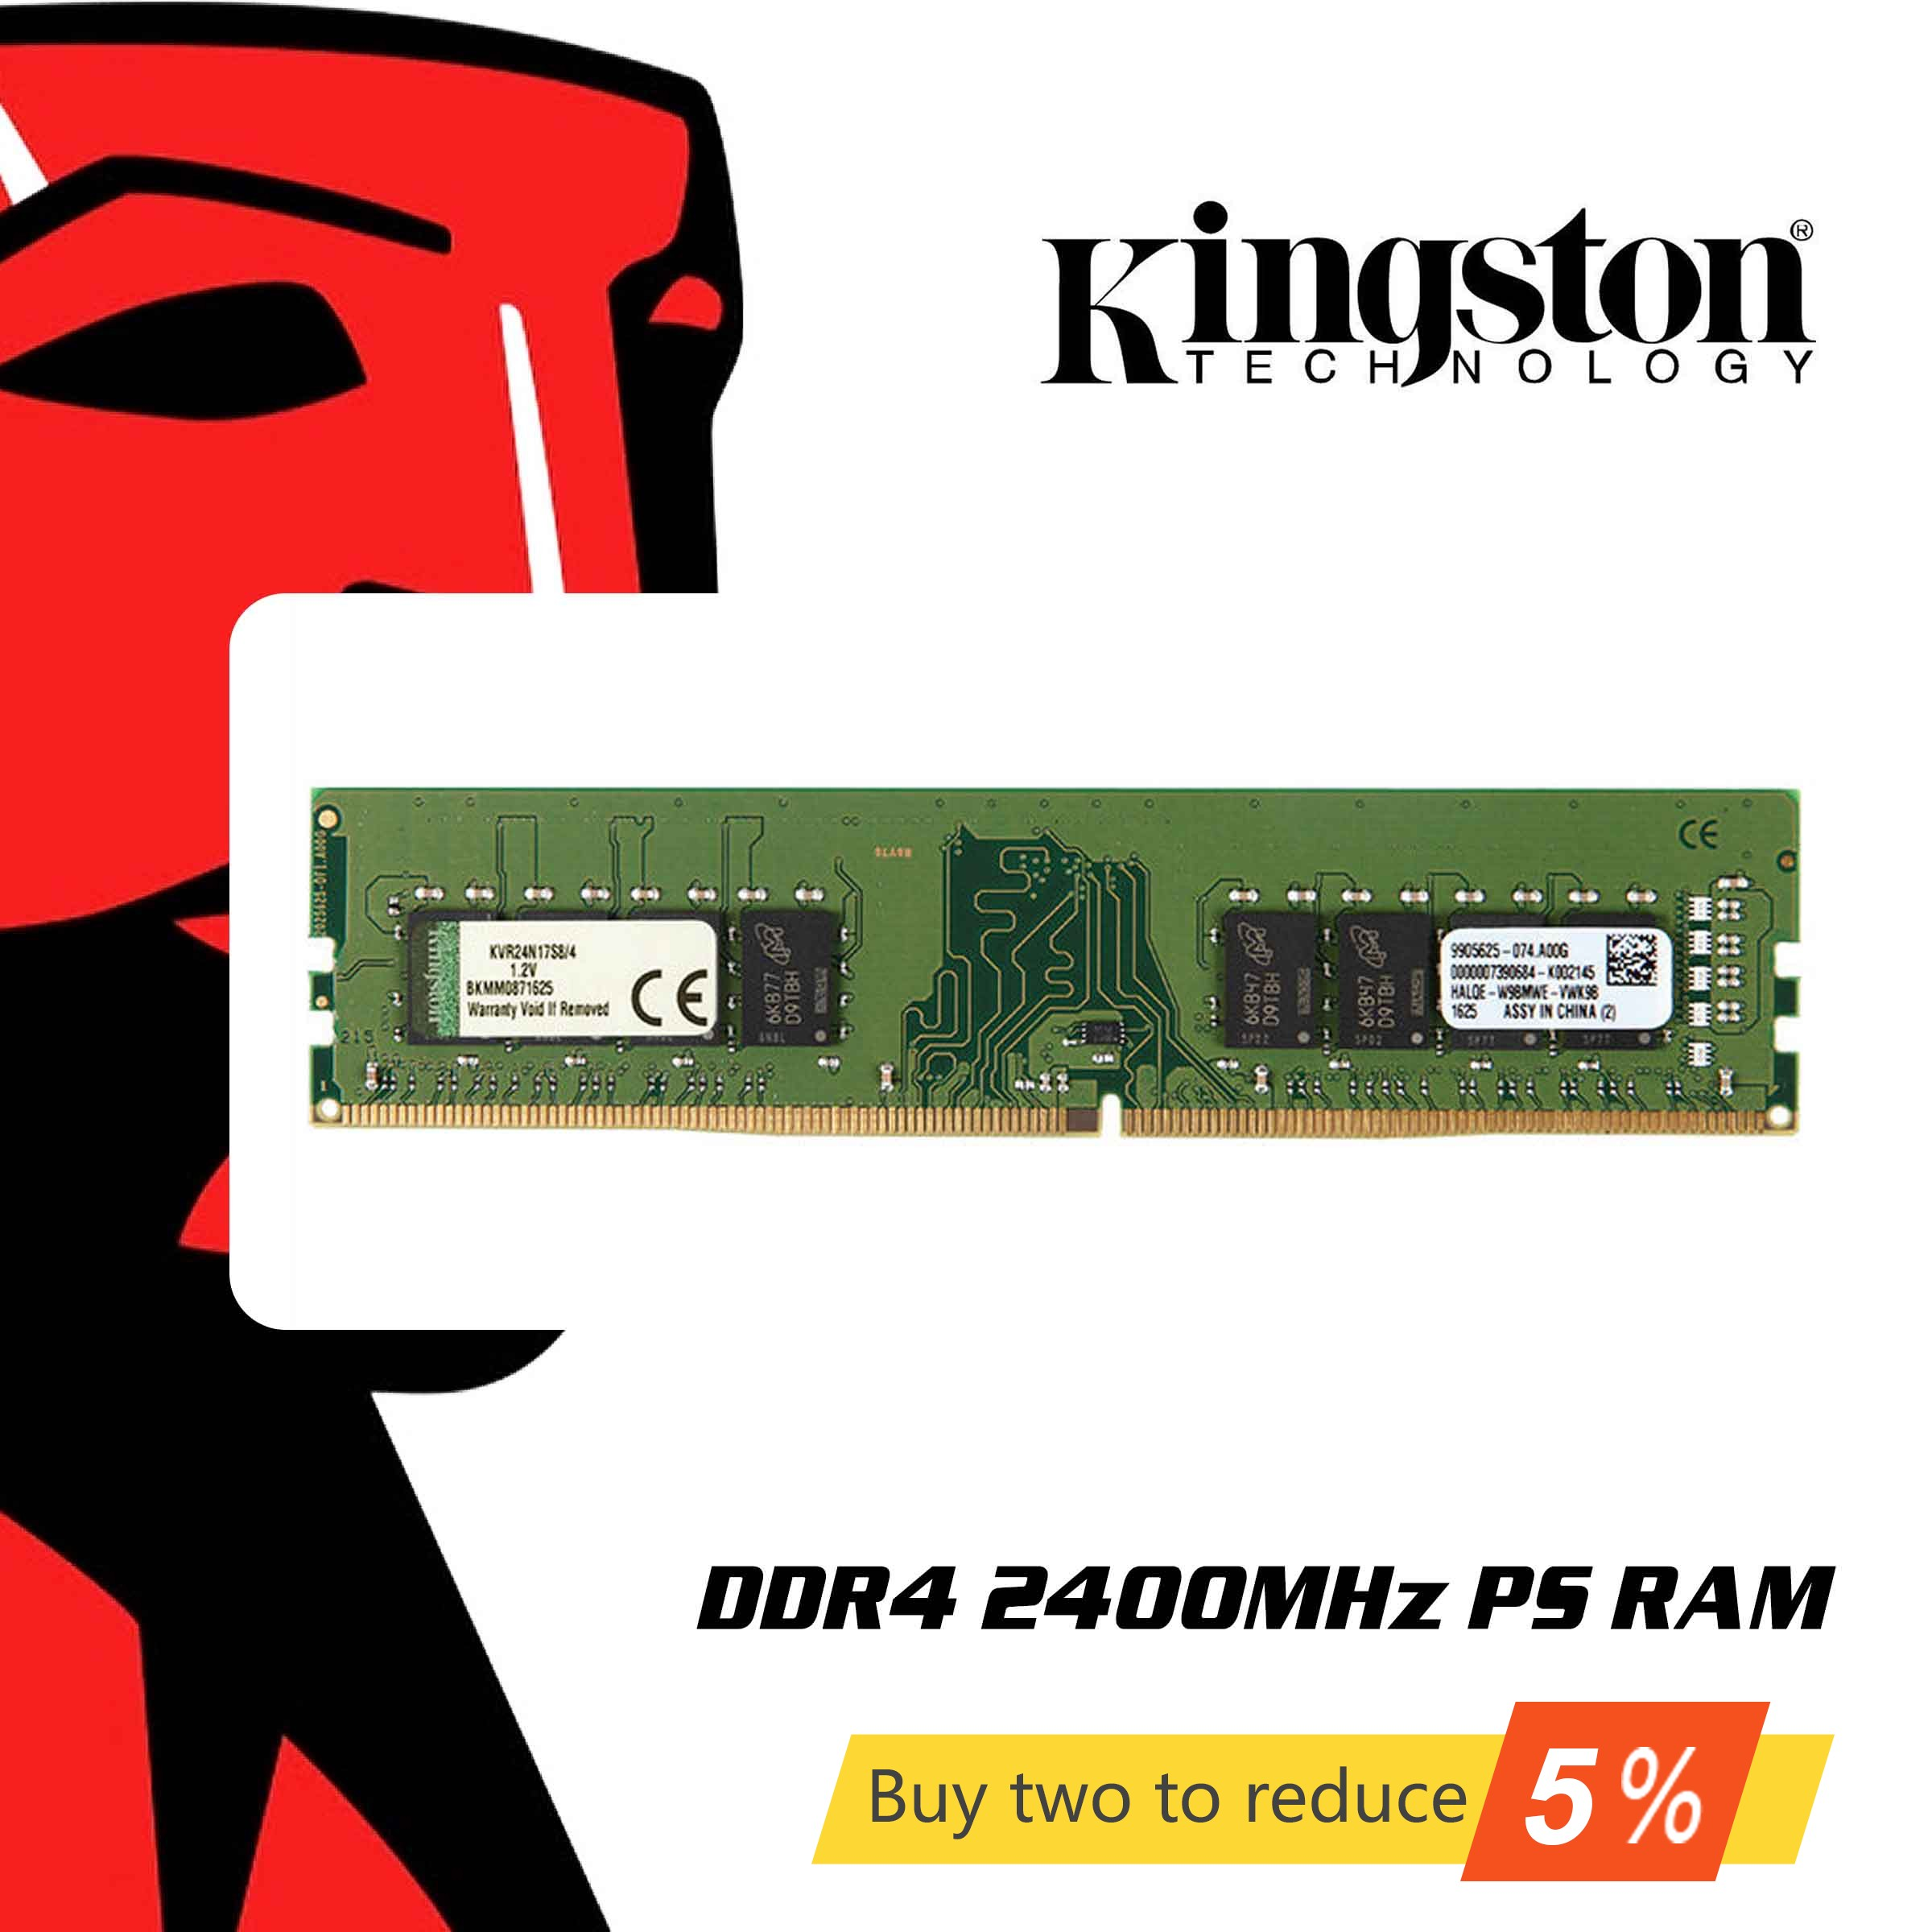 Original Kingston <font><b>DDR4</b></font> RAM Memory 8GB 4GB <font><b>16GB</b></font> 2400Mhz <font><b>Memoria</b></font> DDR 4 8 16 Gigabytes Gigs Sticks for Desktop PC <font><b>Notebook</b></font> Laptop image